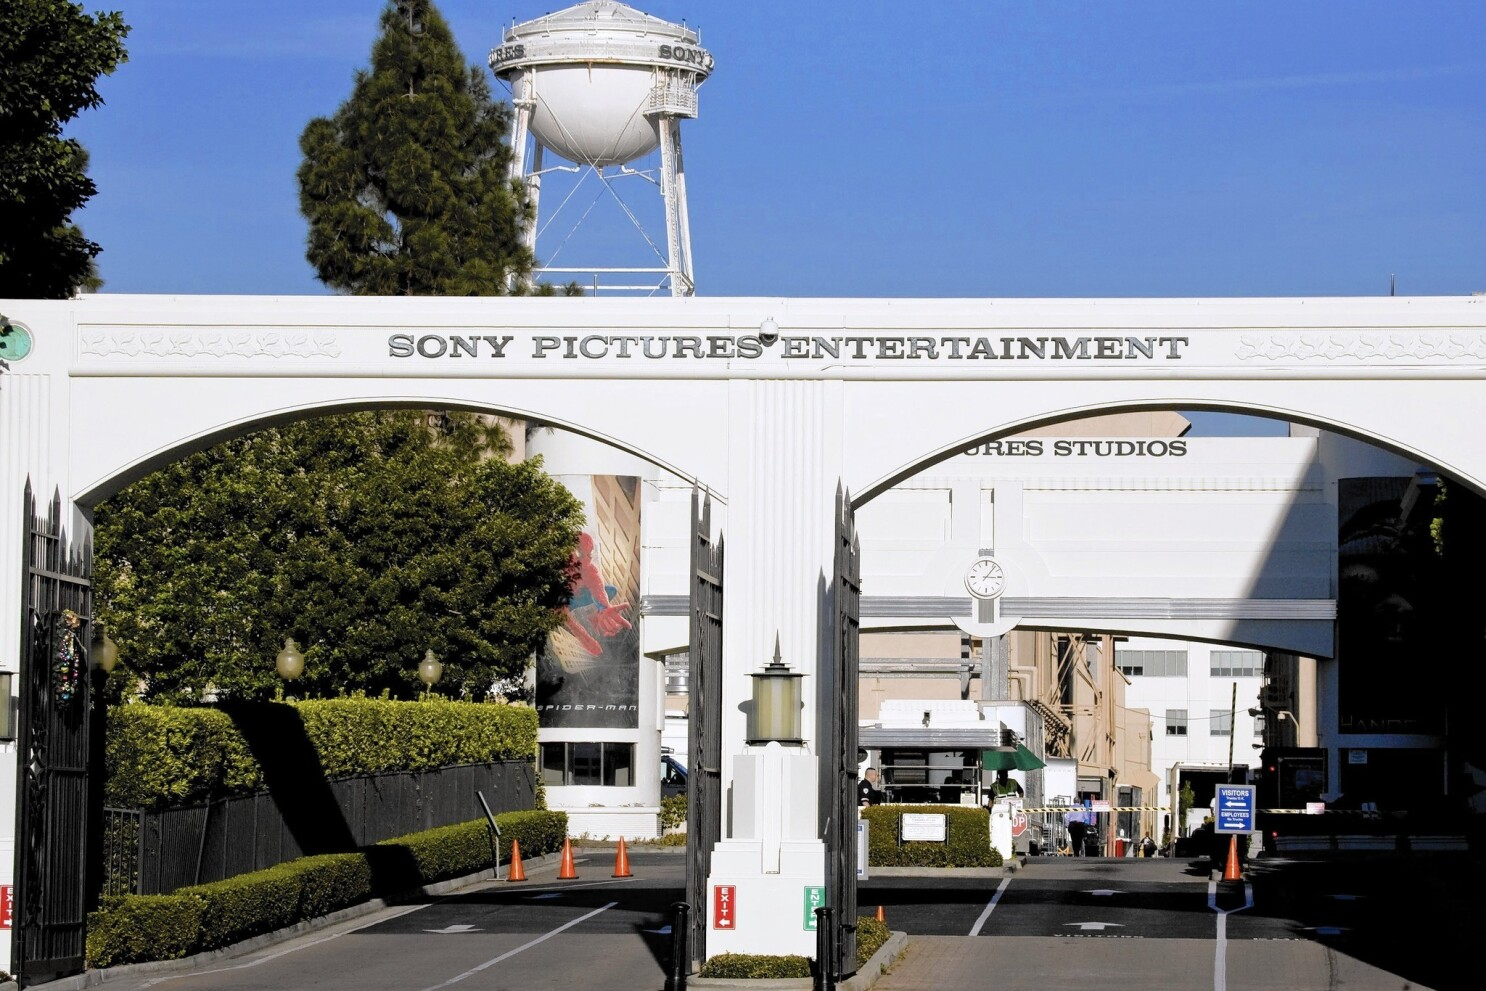 Hack at Sony Pictures shuts computer system - Los Angeles Times